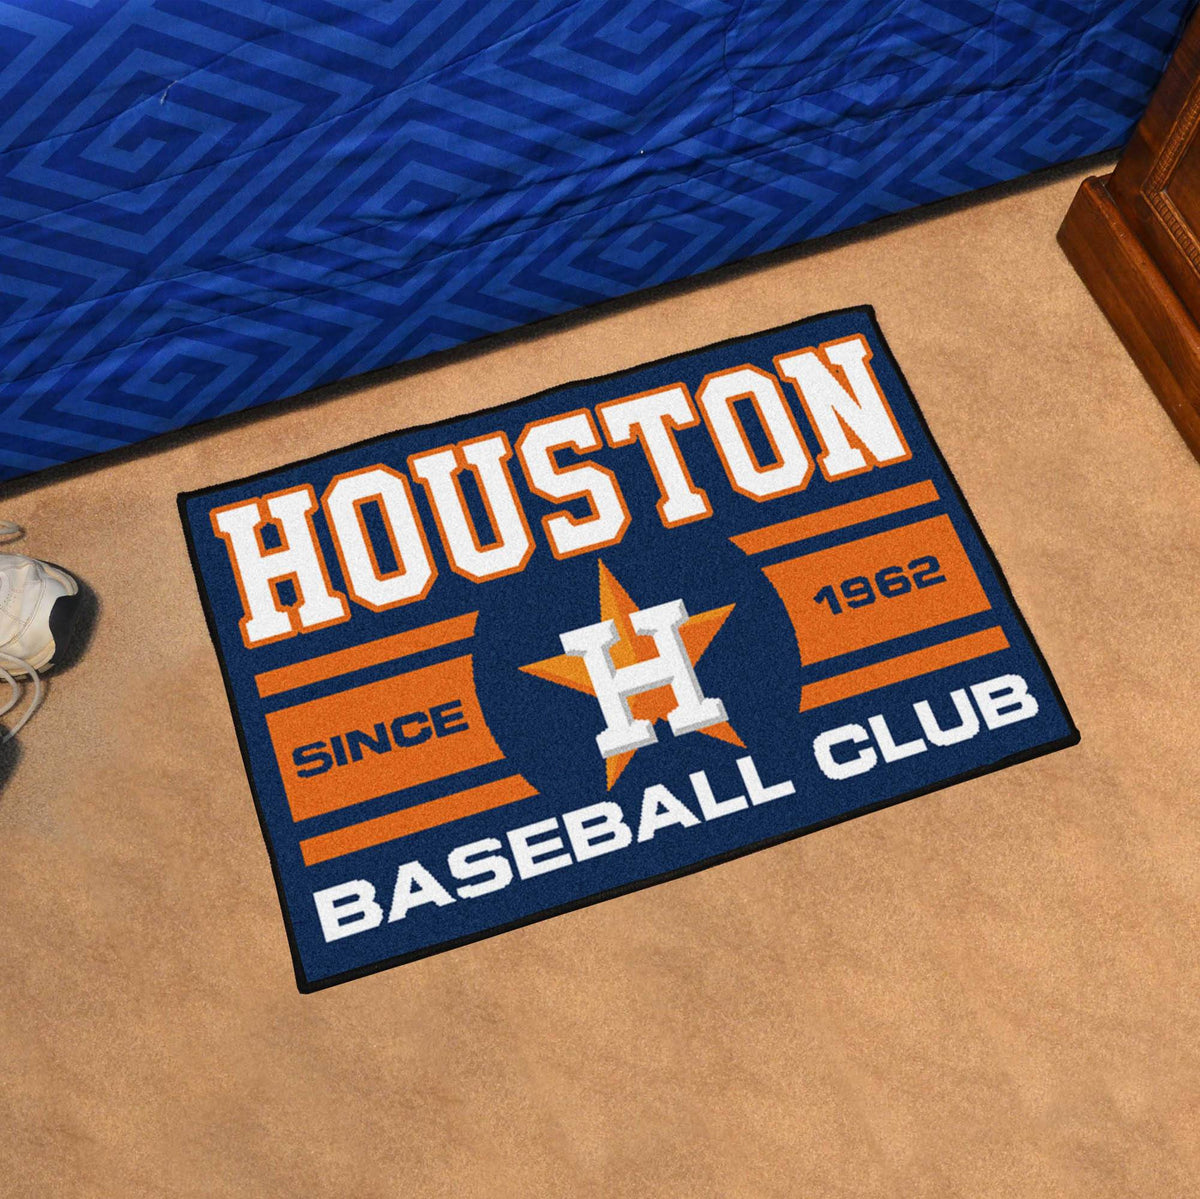 MLB - Uniform Starter Mat MLB Mats, Rectangular Mats, Uniform Starter Mat, MLB, Home Fan Mats Houston Astros